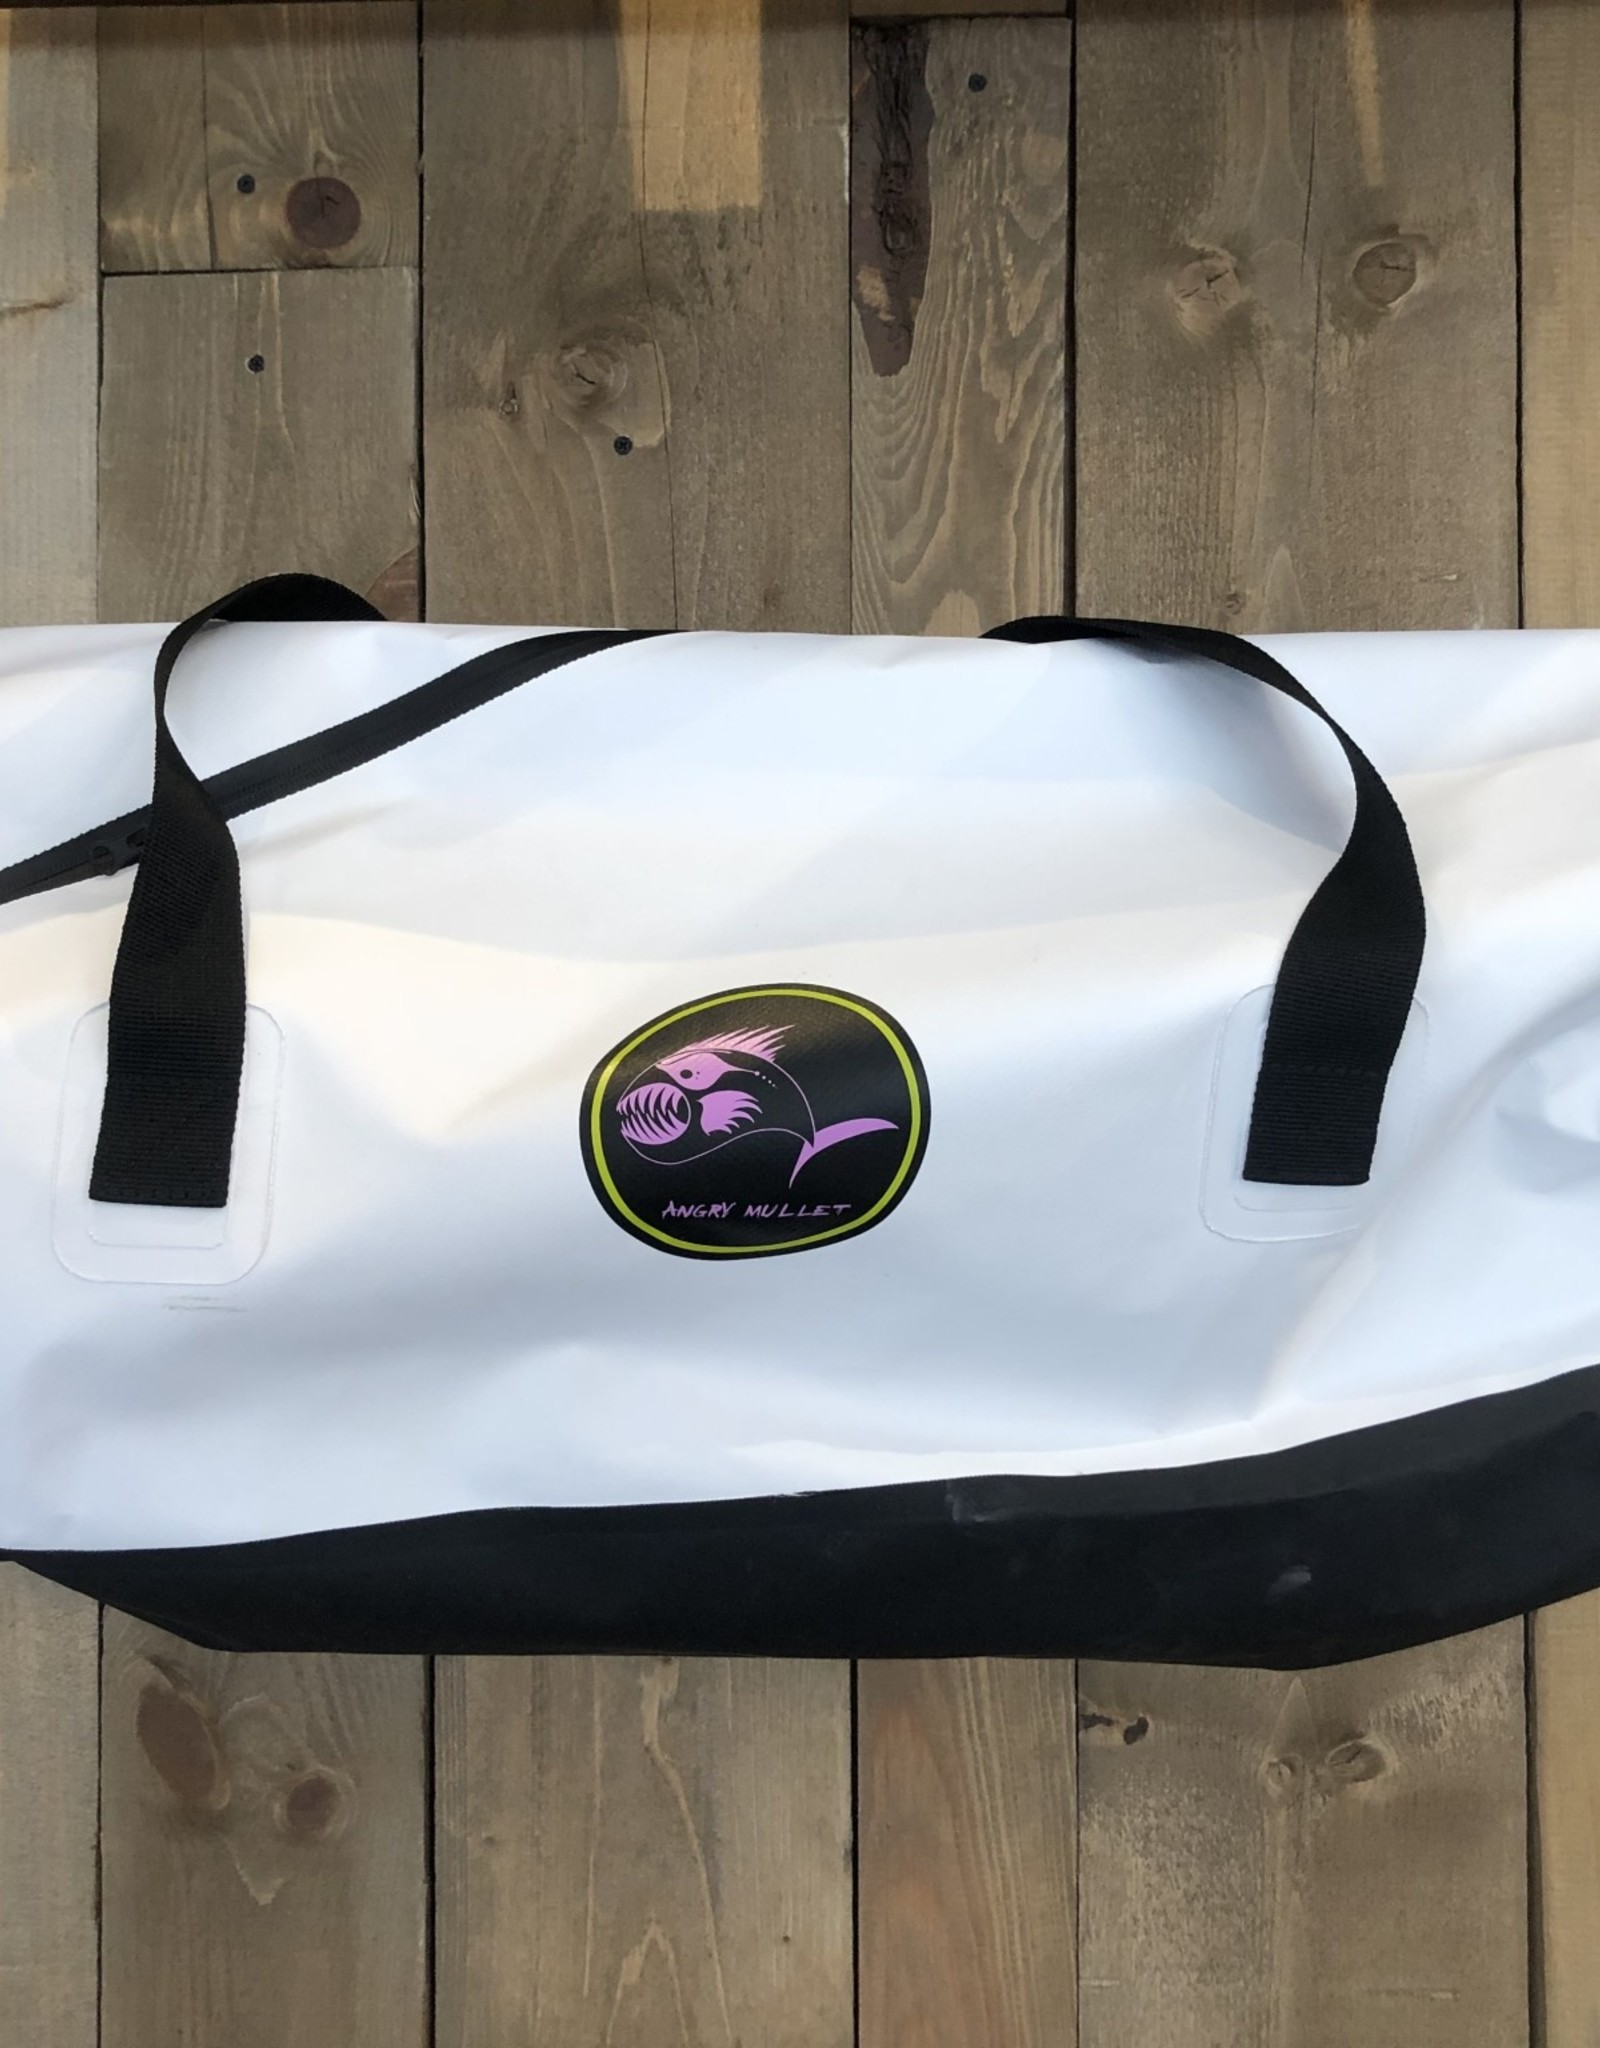 Angry Mullet Waterproof Gear bag